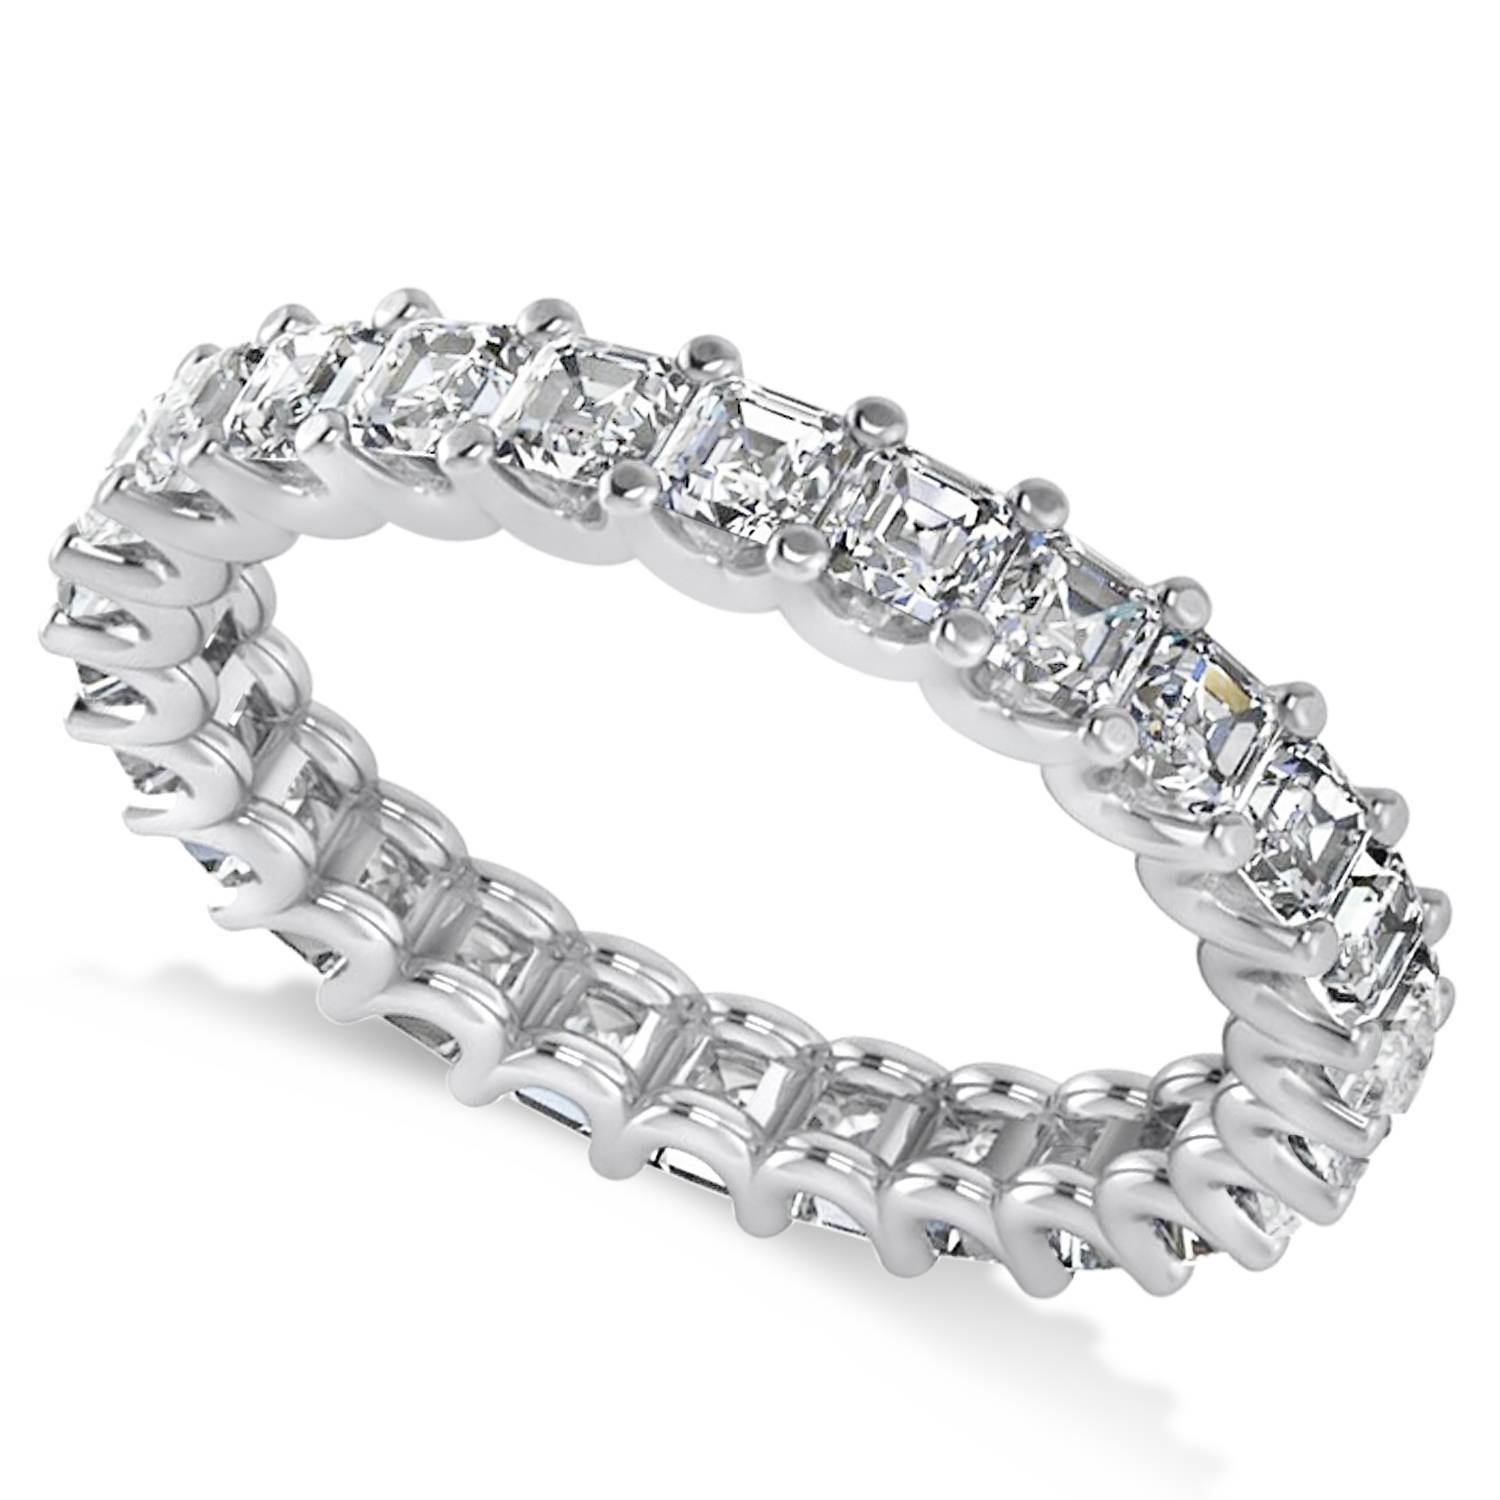 Radiant Cut Diamond Eternity Wedding Band Ring 14K White Gold 2.60Ct With Regard To Best And Newest Diamond Eternity Wedding Bands (Gallery 6 of 15)